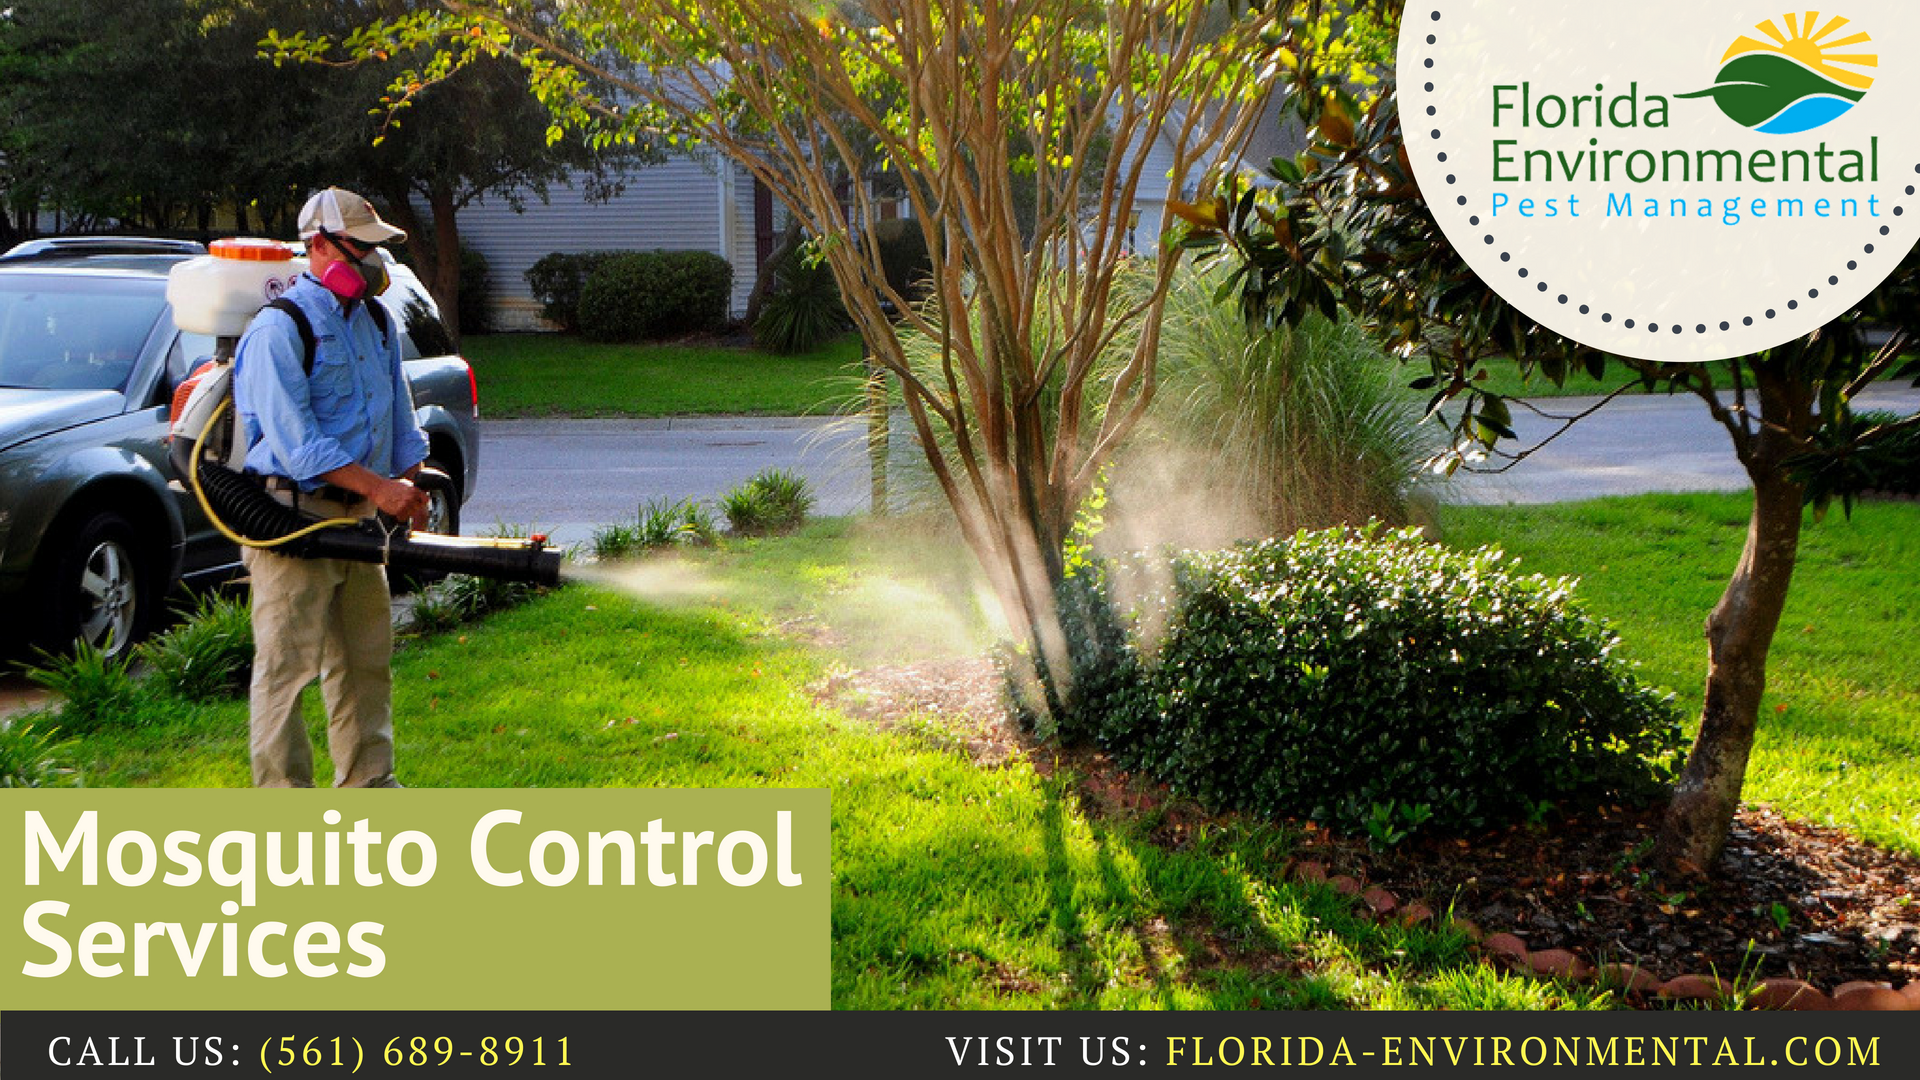 Welcome To Florida Environmental Pest Management We Are Able To Solve The Pest Issue And Do Action In Allev Mosquito Control Pest Control Organic Pest Control